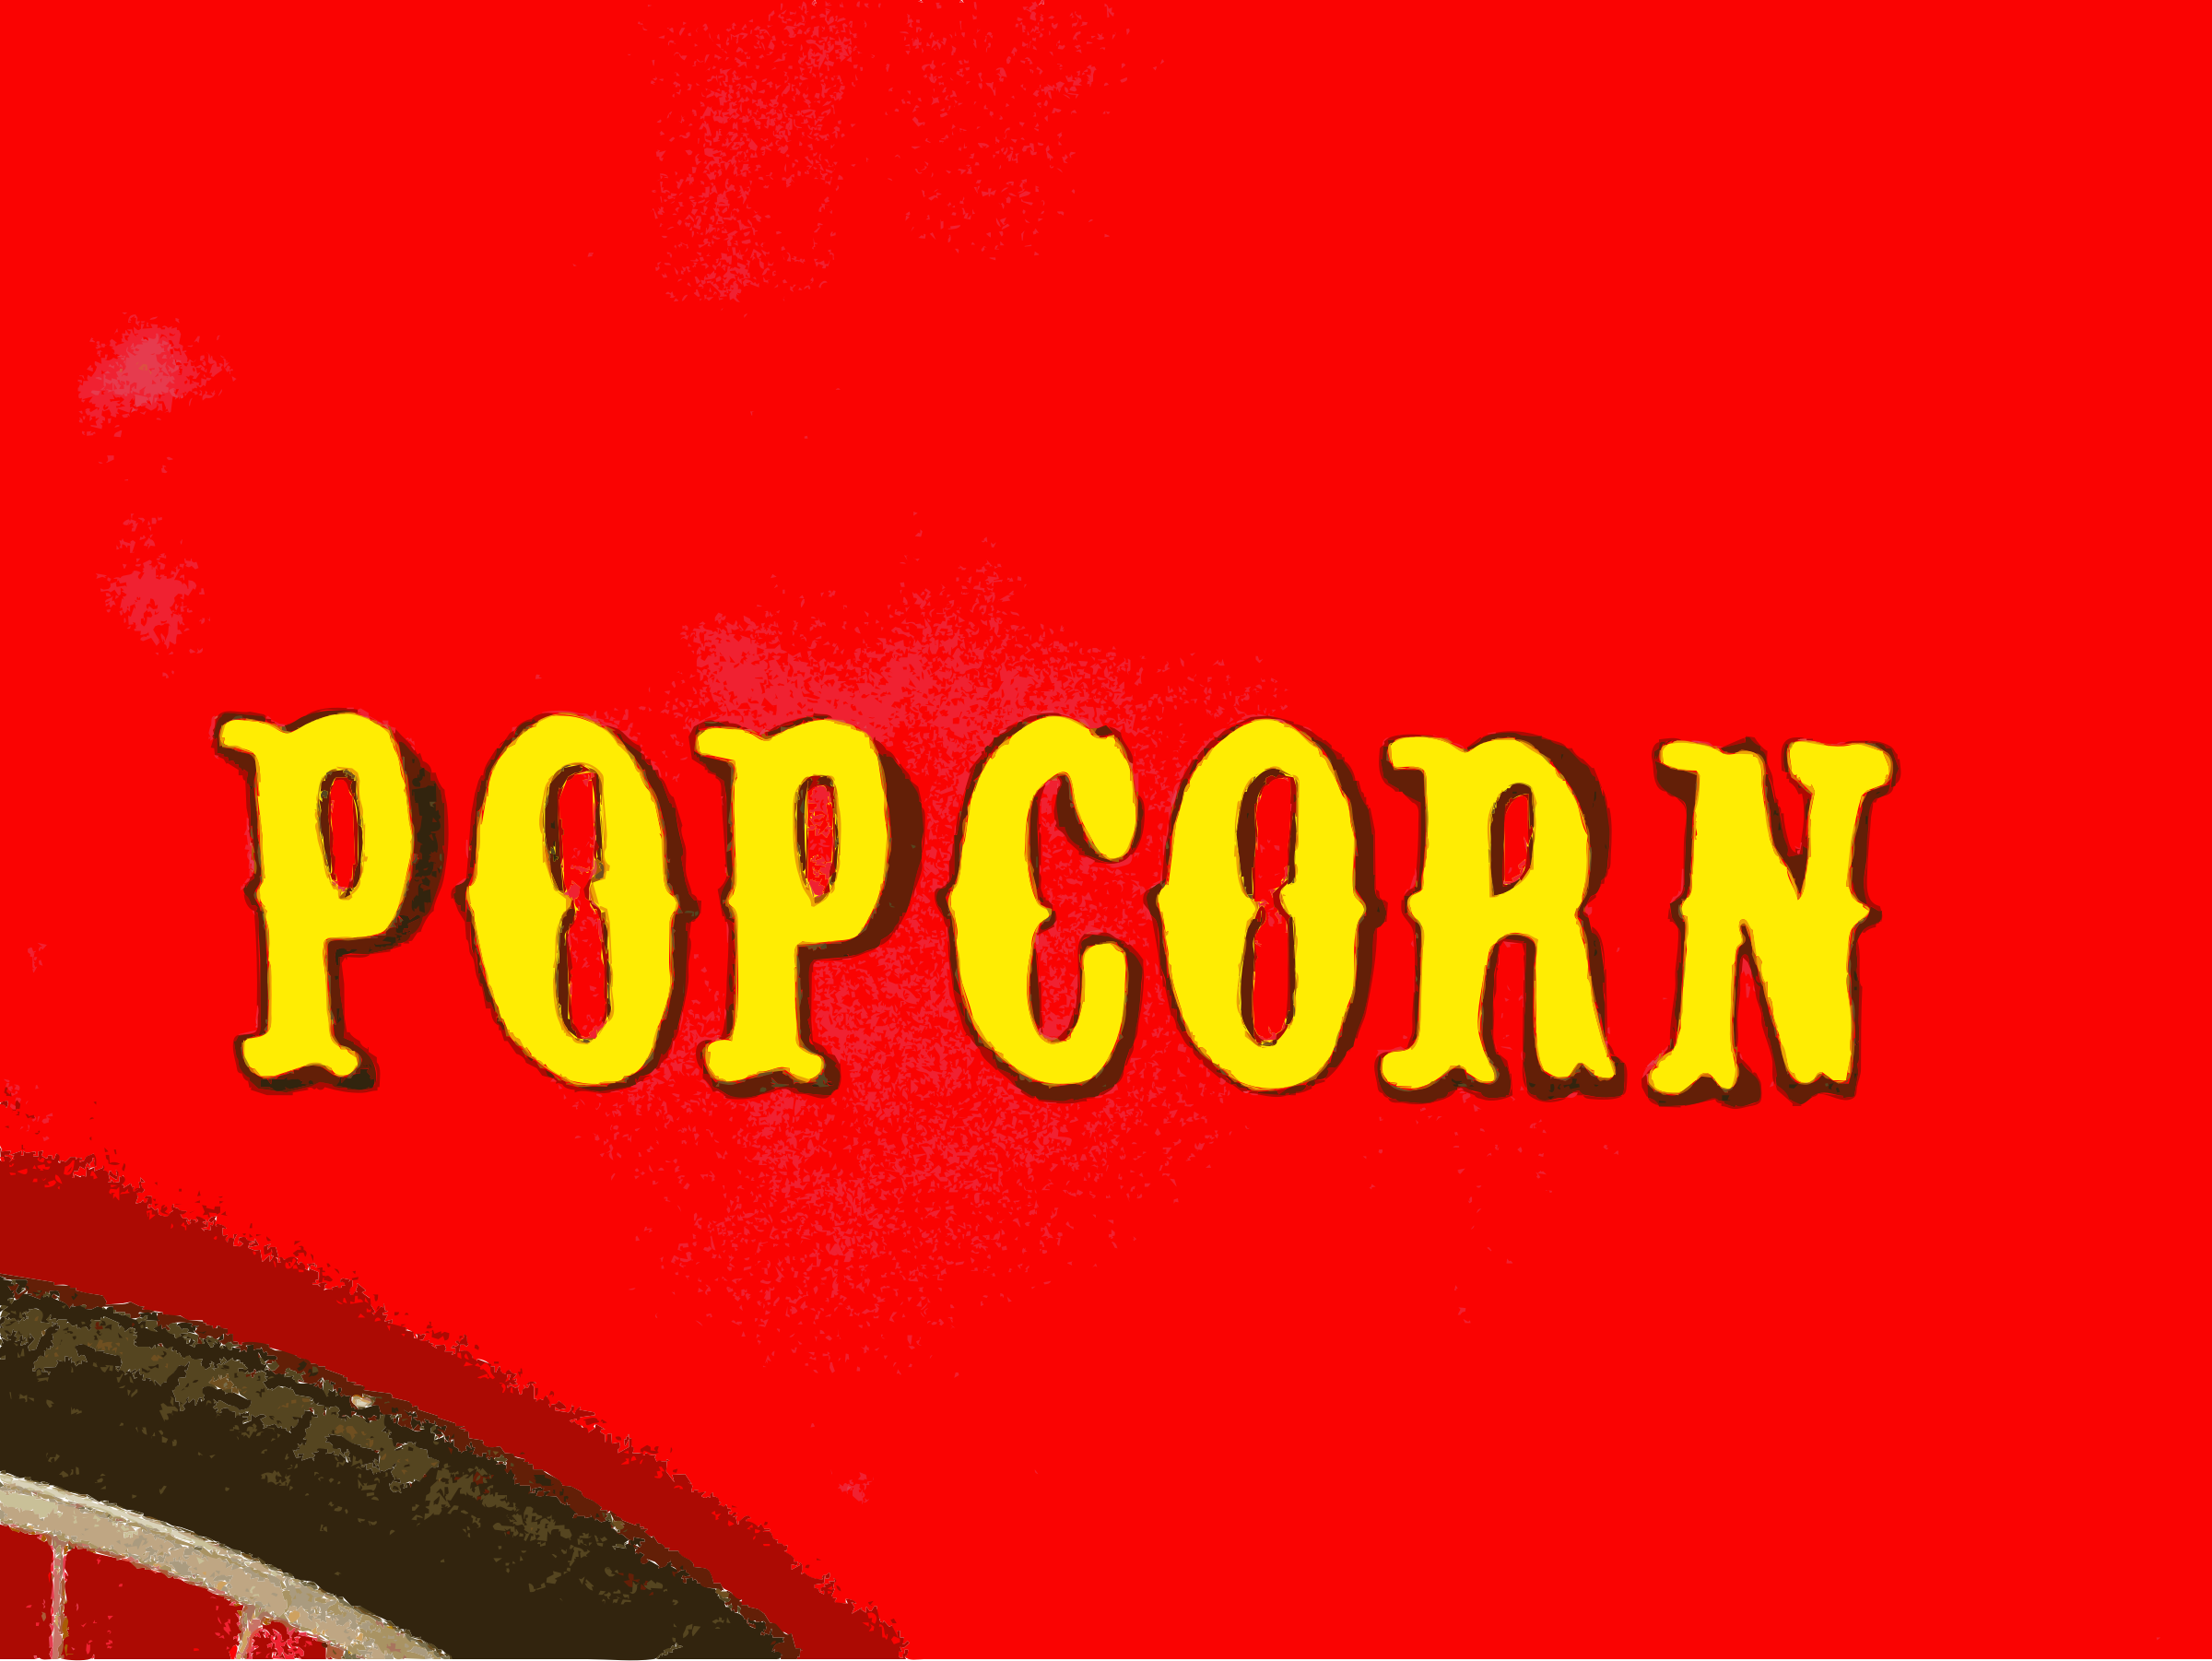 Get your popcorn sign by jonphillips